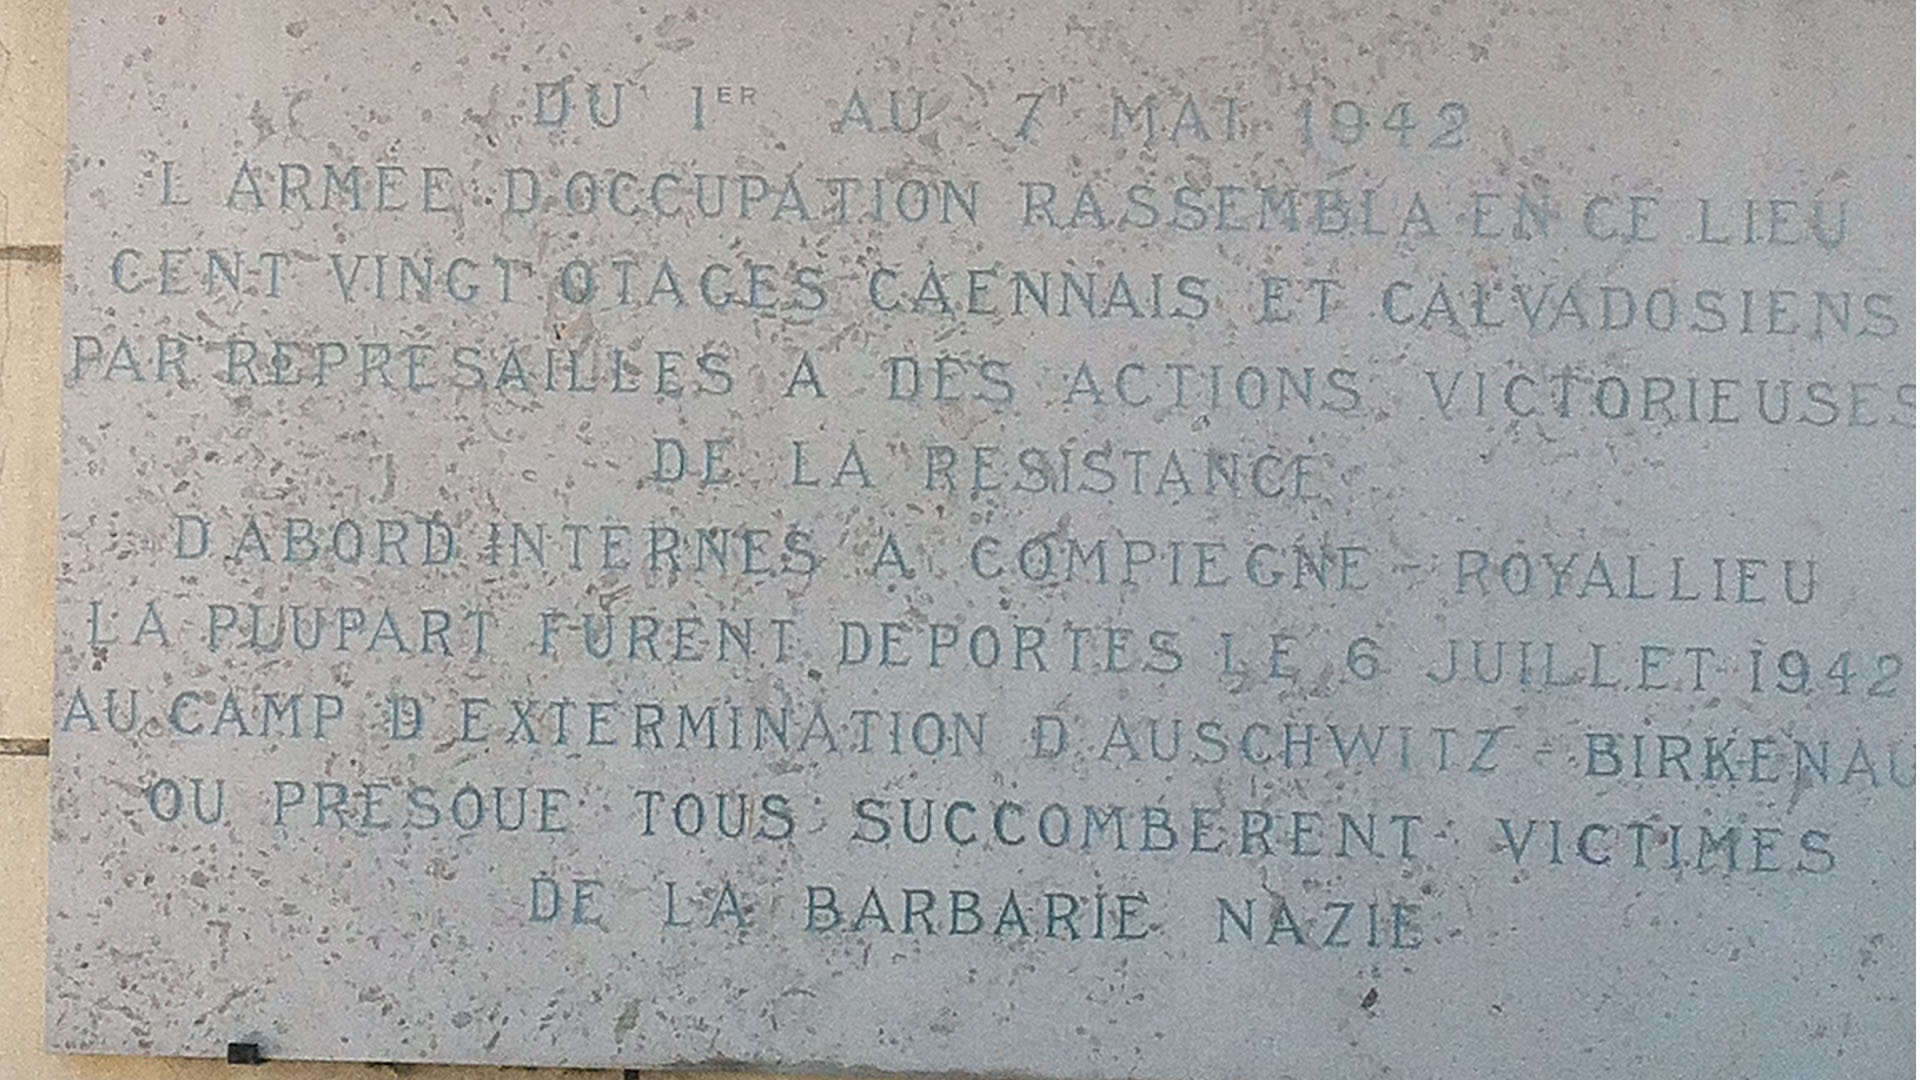 Memorial to the Resistance, Caen